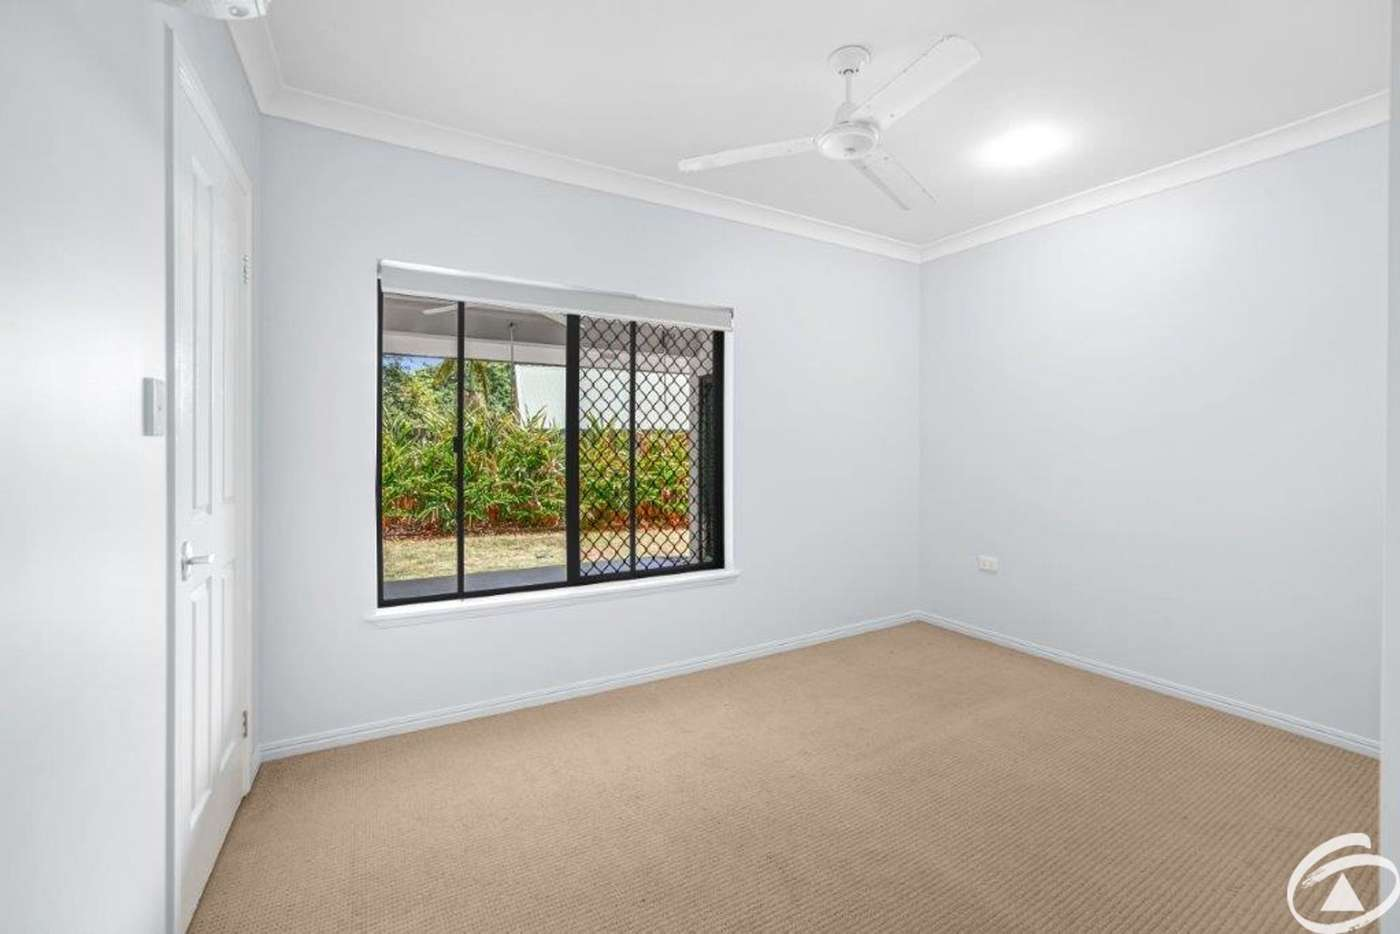 Seventh view of Homely house listing, 7 Tradewinds Close, Redlynch QLD 4870